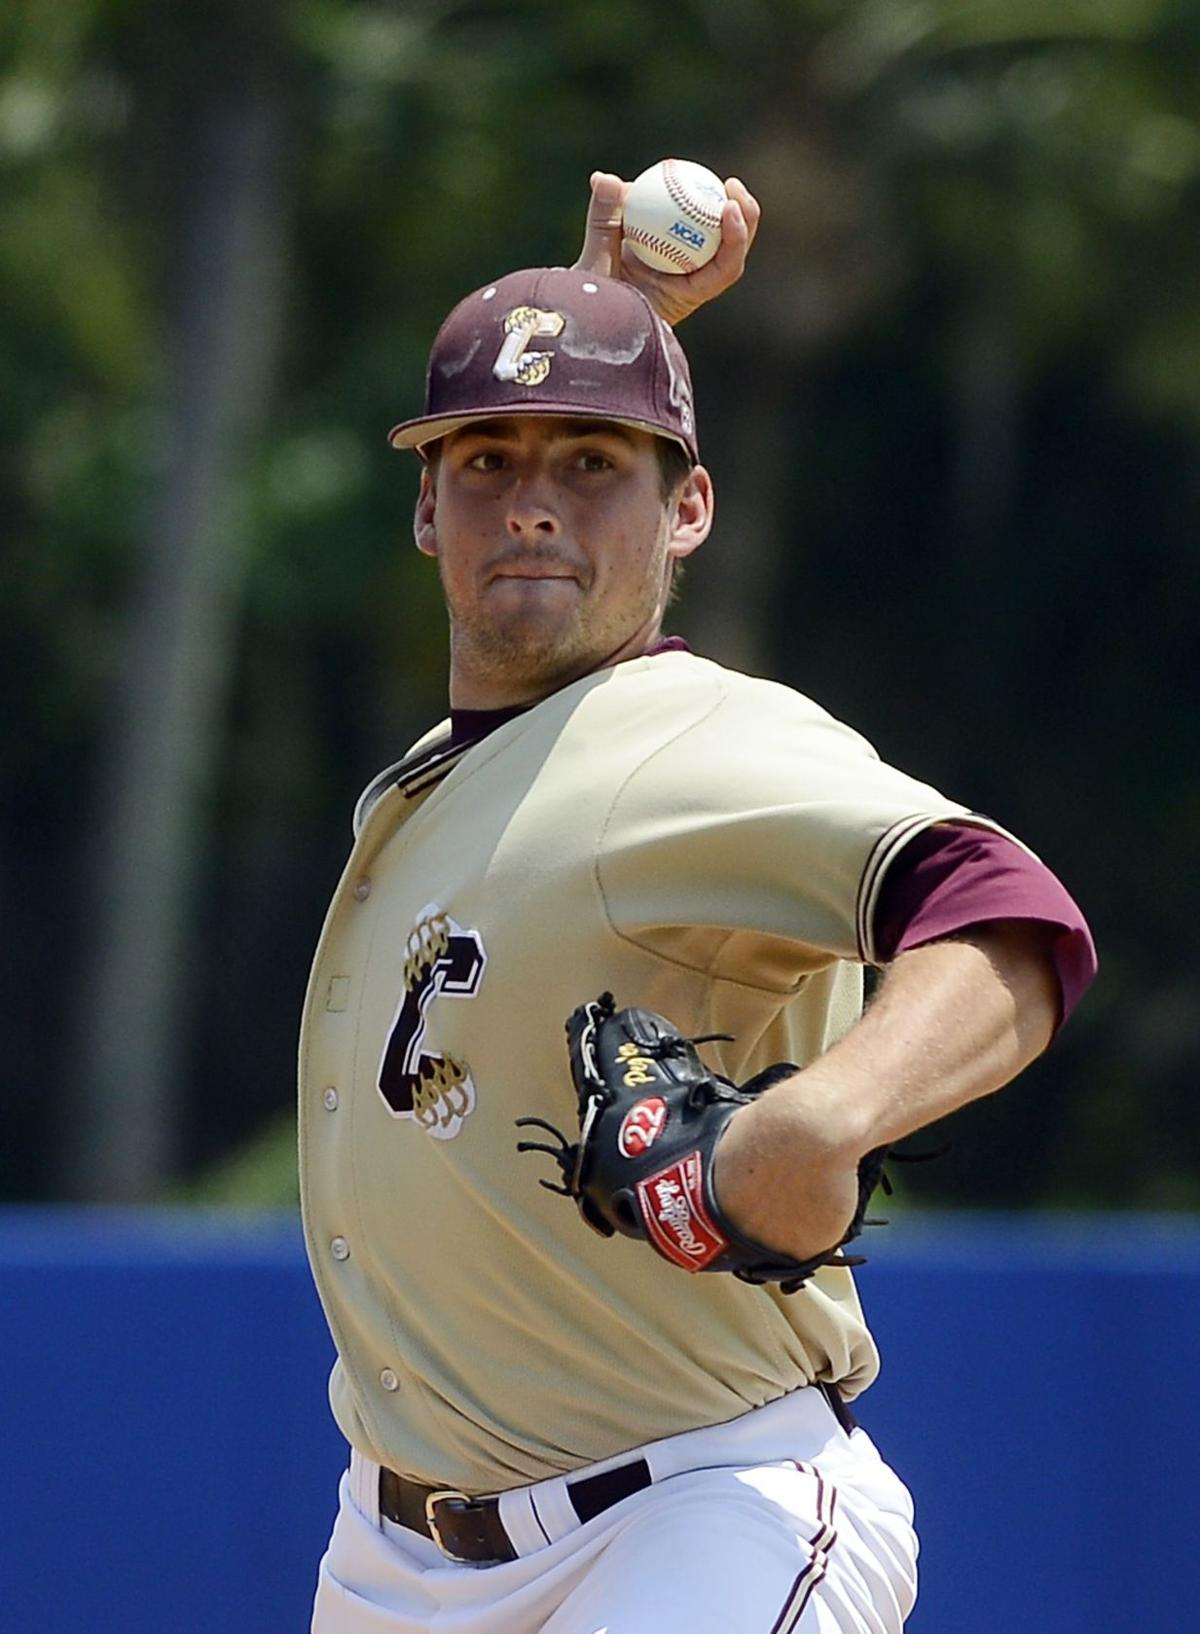 Cougs pitcher Pegler out with hand injury